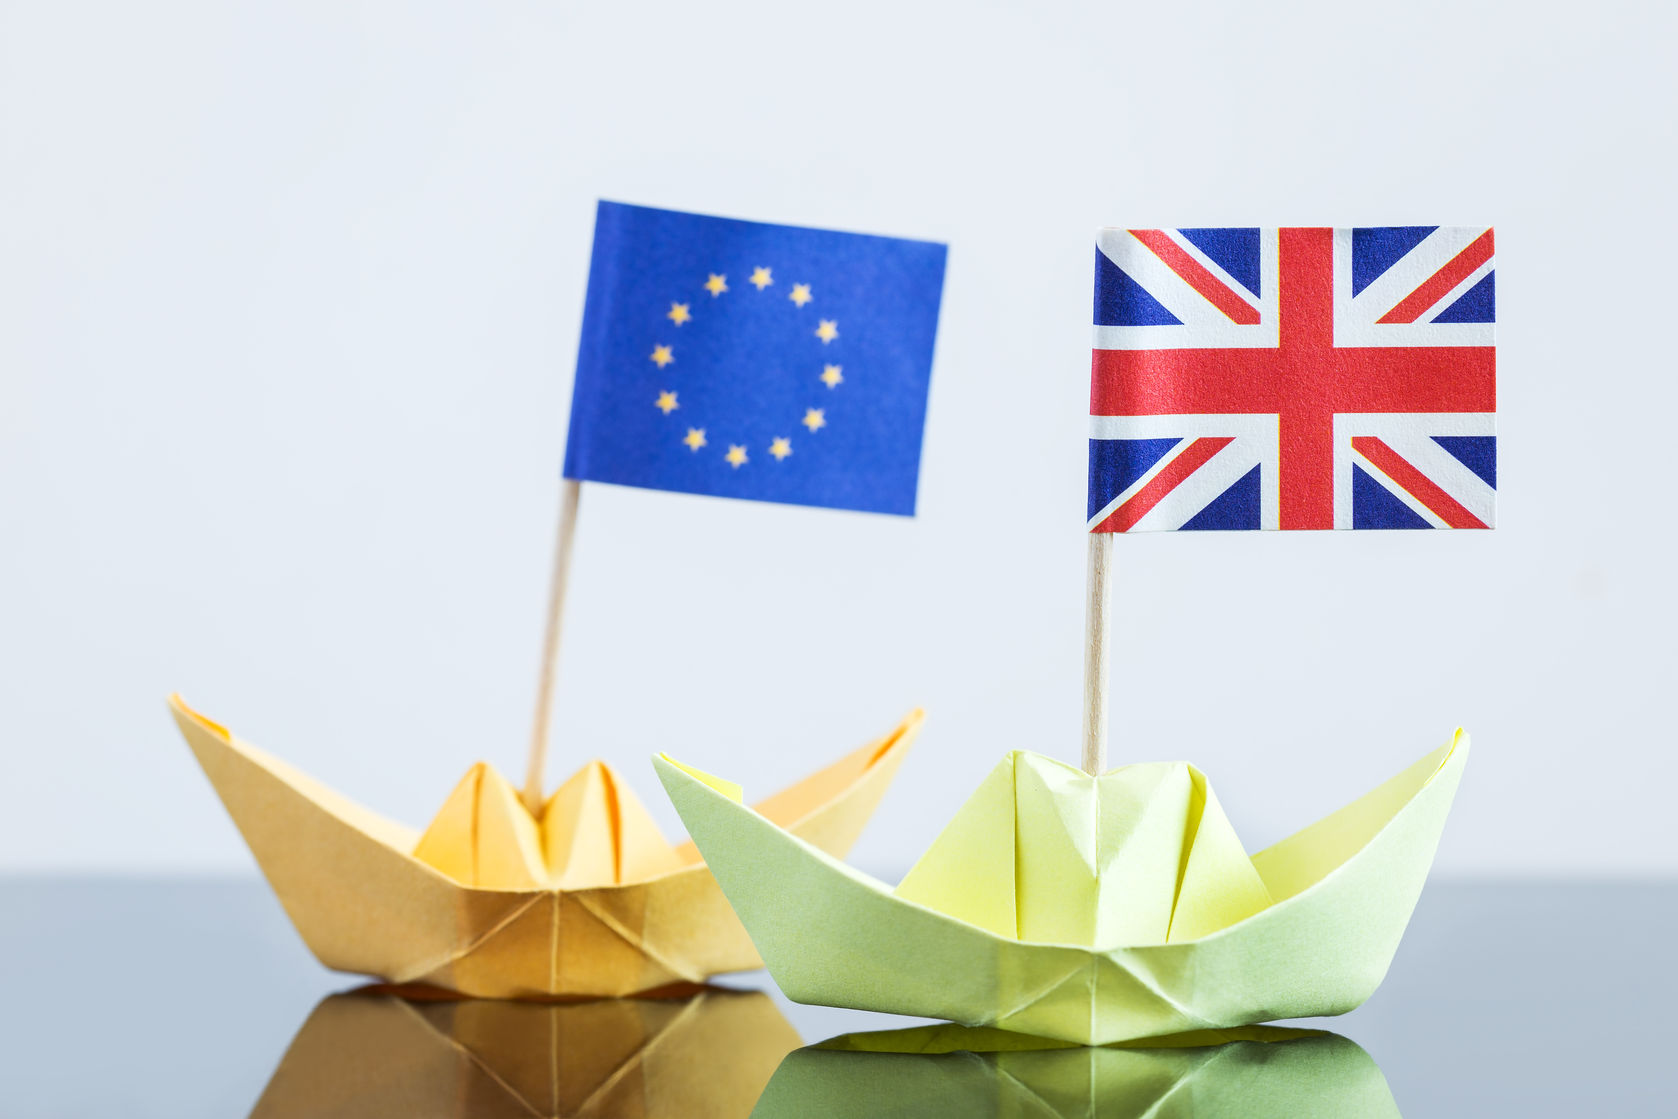 56911165 - paper ship with british and european flag, concept shipment or free trade agreement and membership of eu, brexit